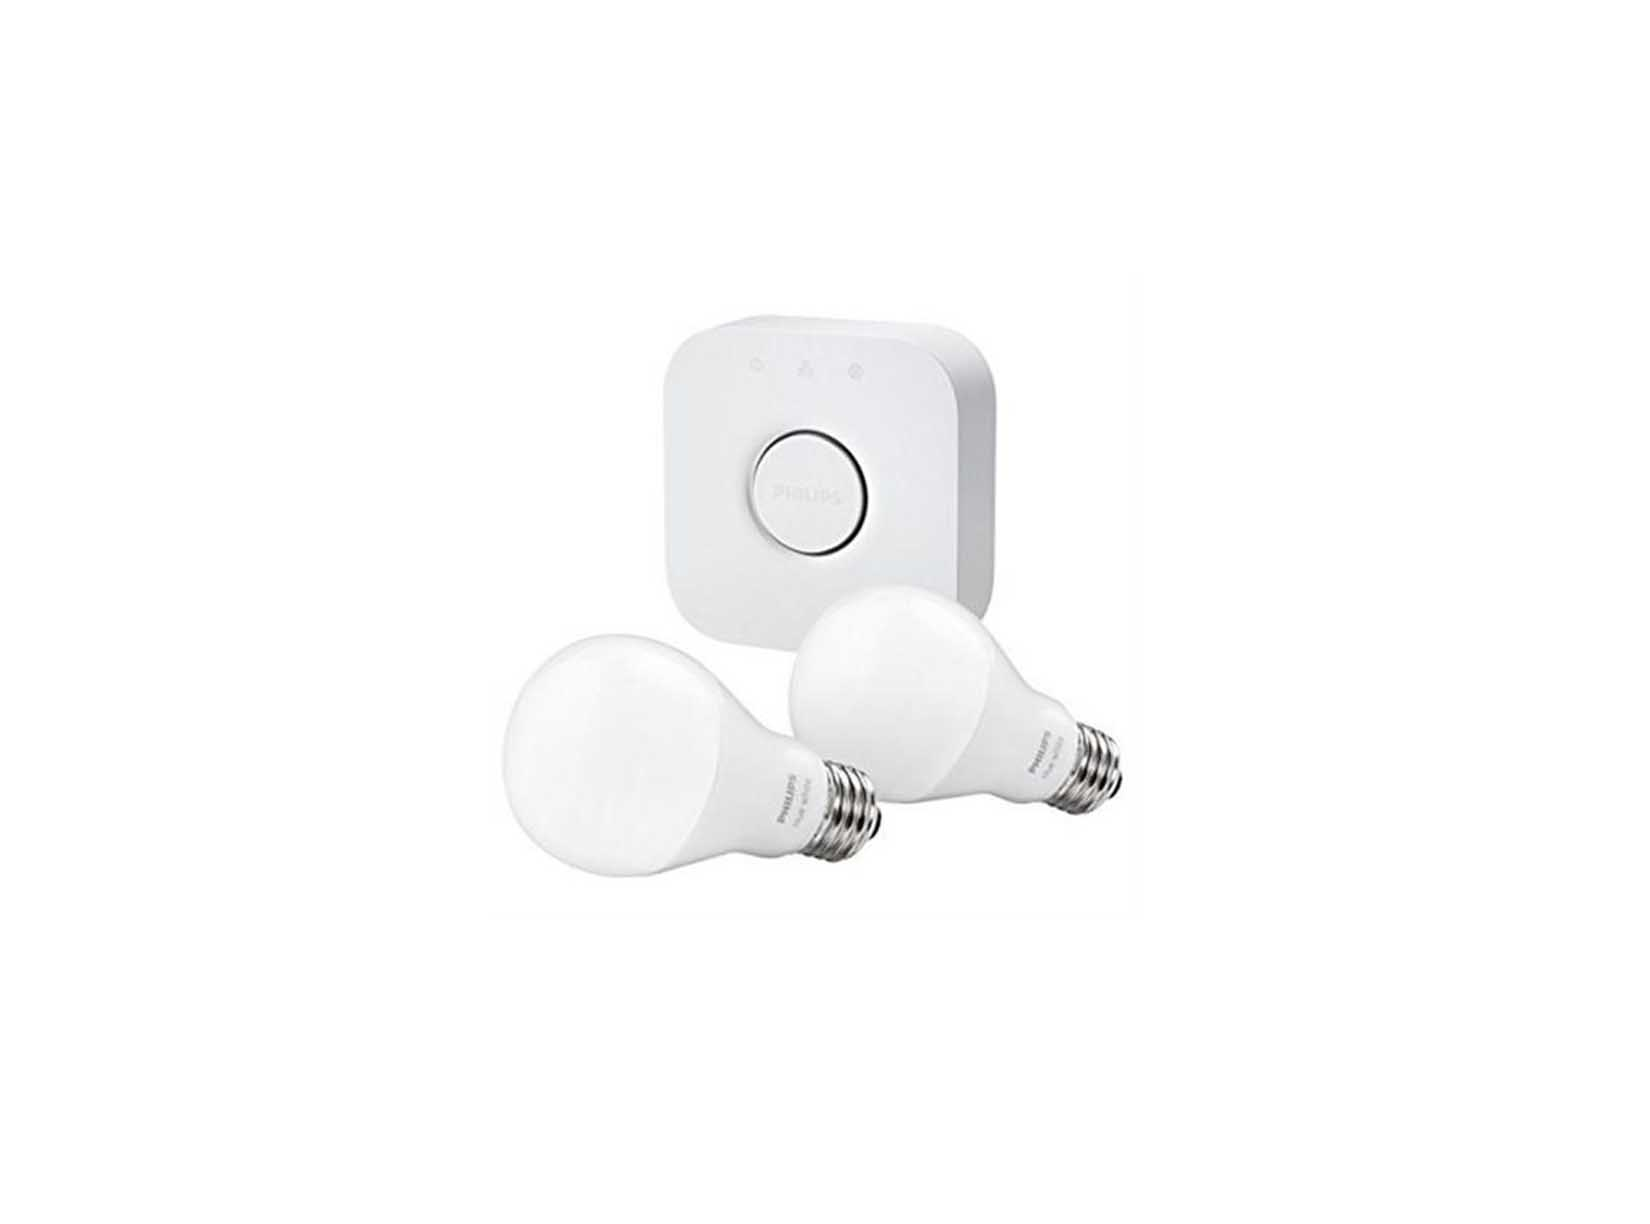 Philips Hue White E26 Starter Kit For 54 99 At Rakuten